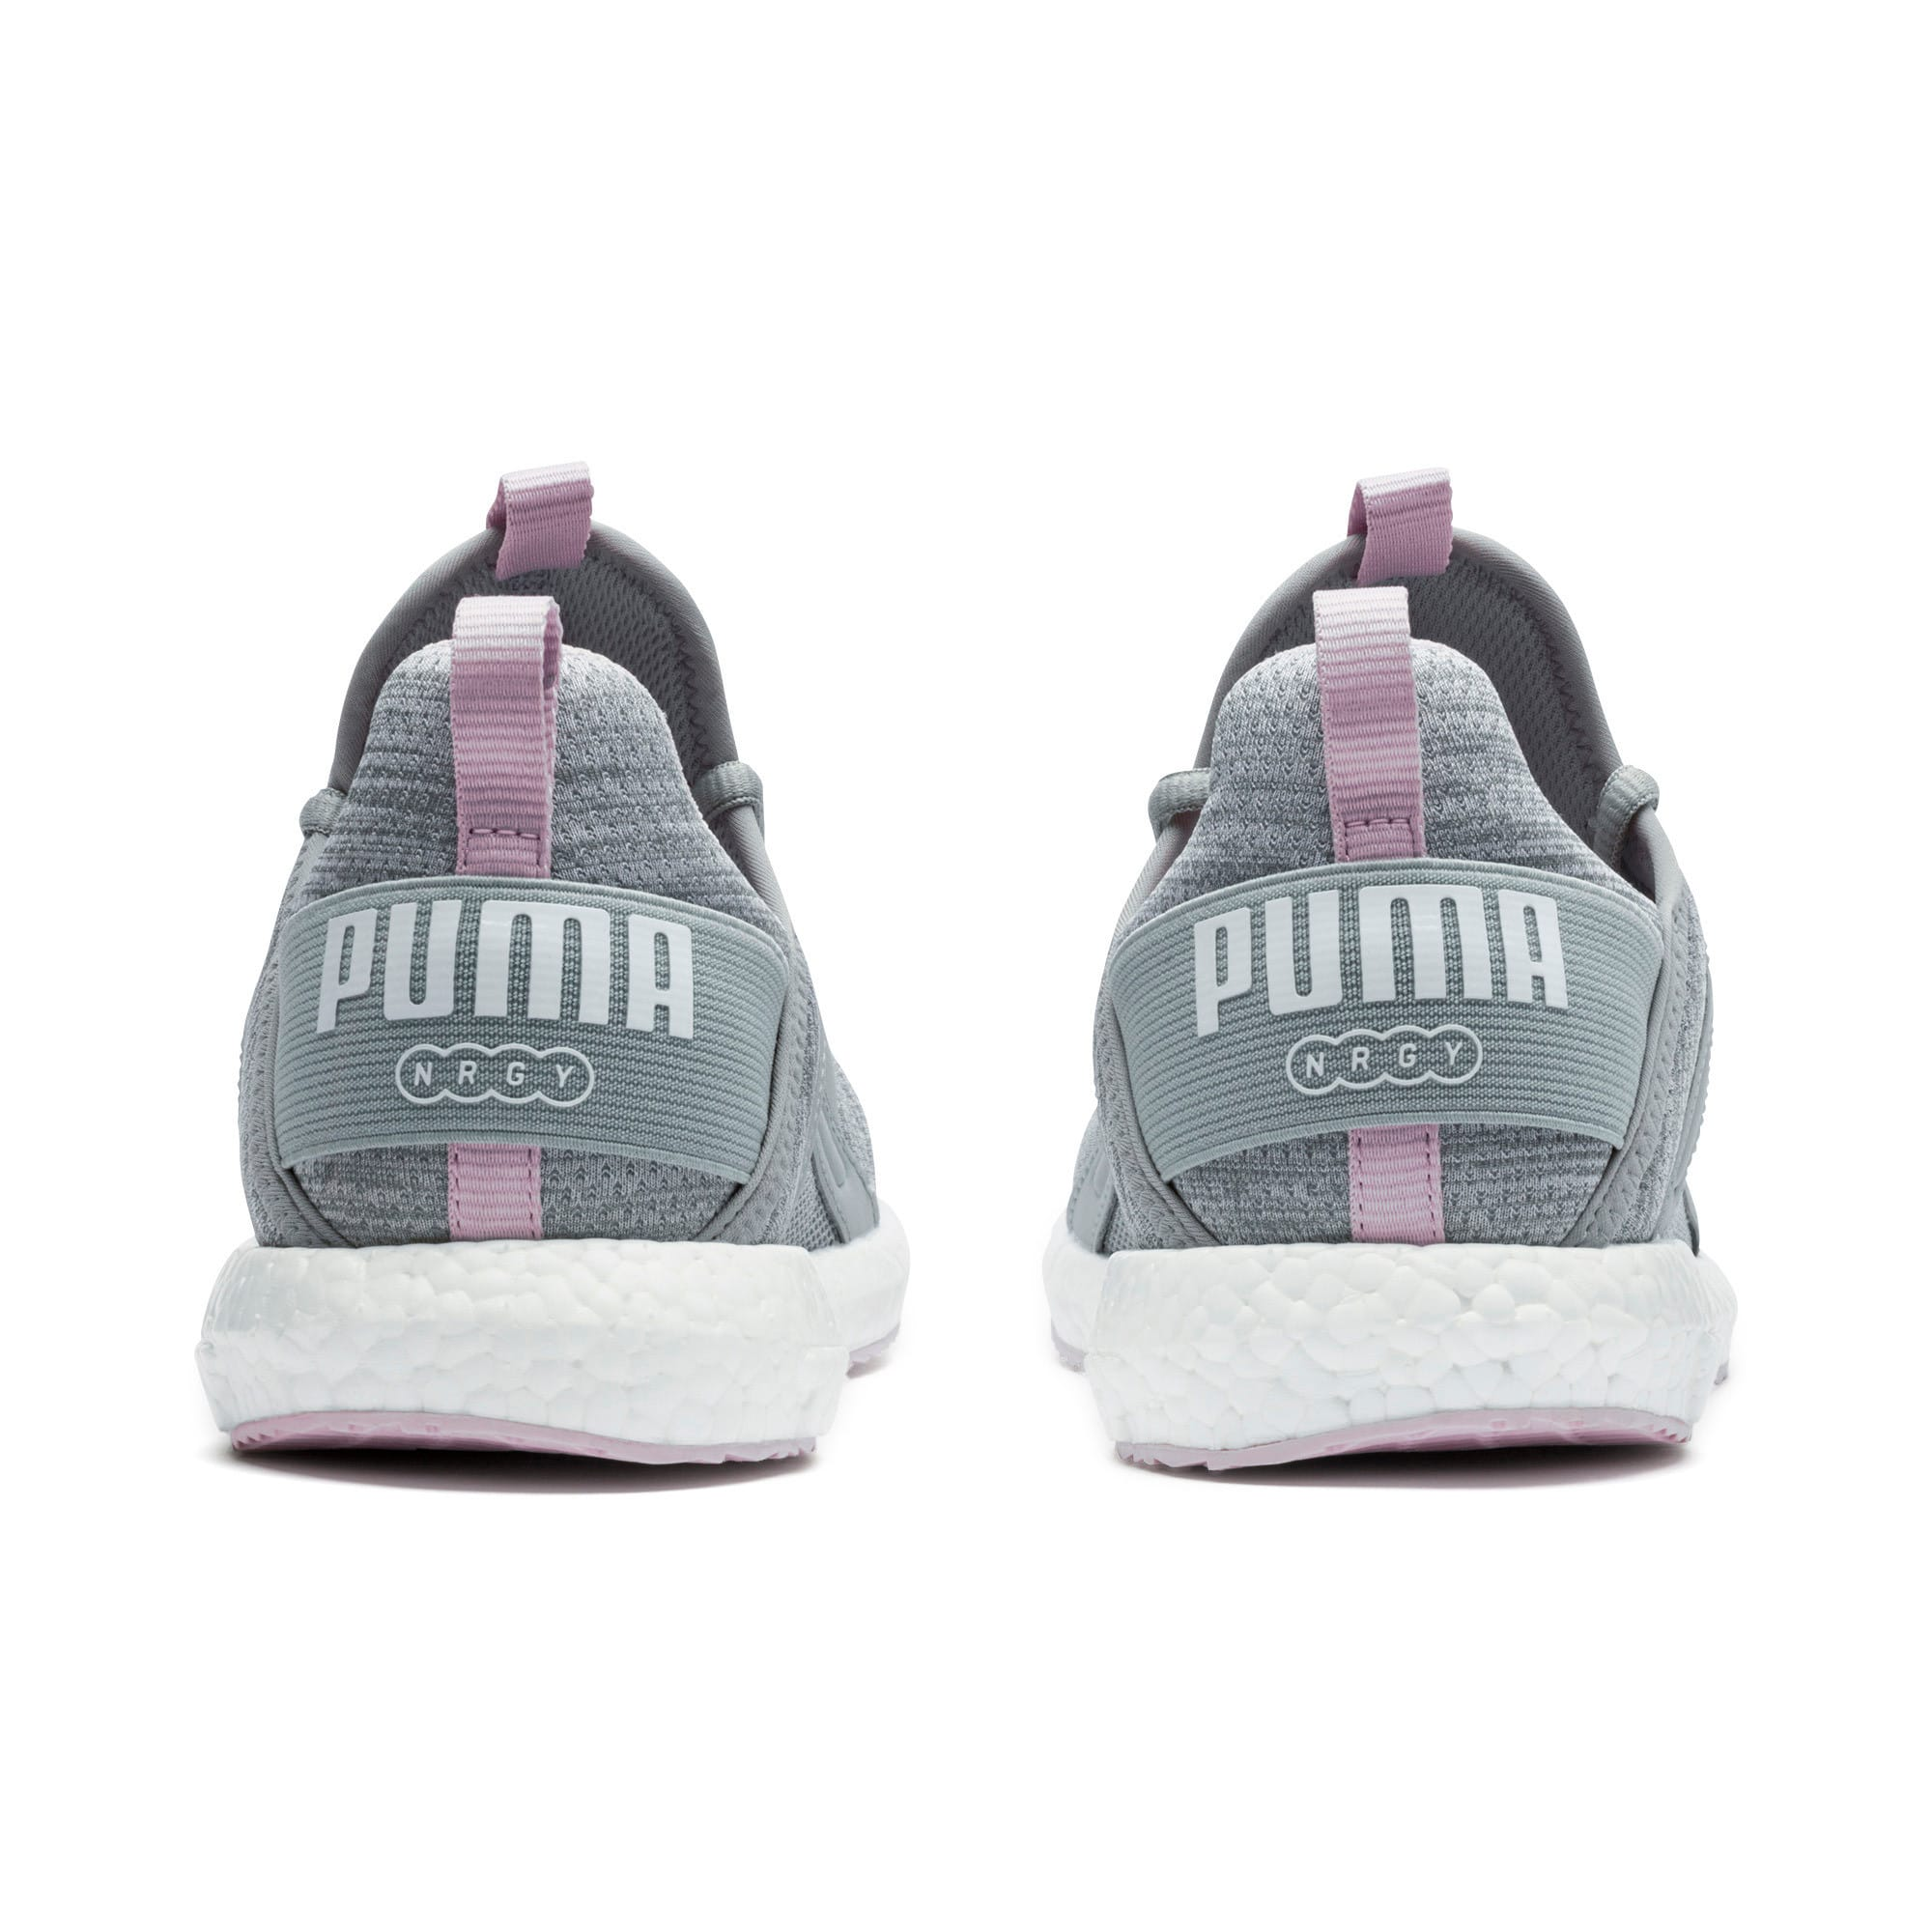 Thumbnail 3 of Mega Energy Heather Knit Women's Running Shoes, Quarry-Winsome Orchid-White, medium-IND